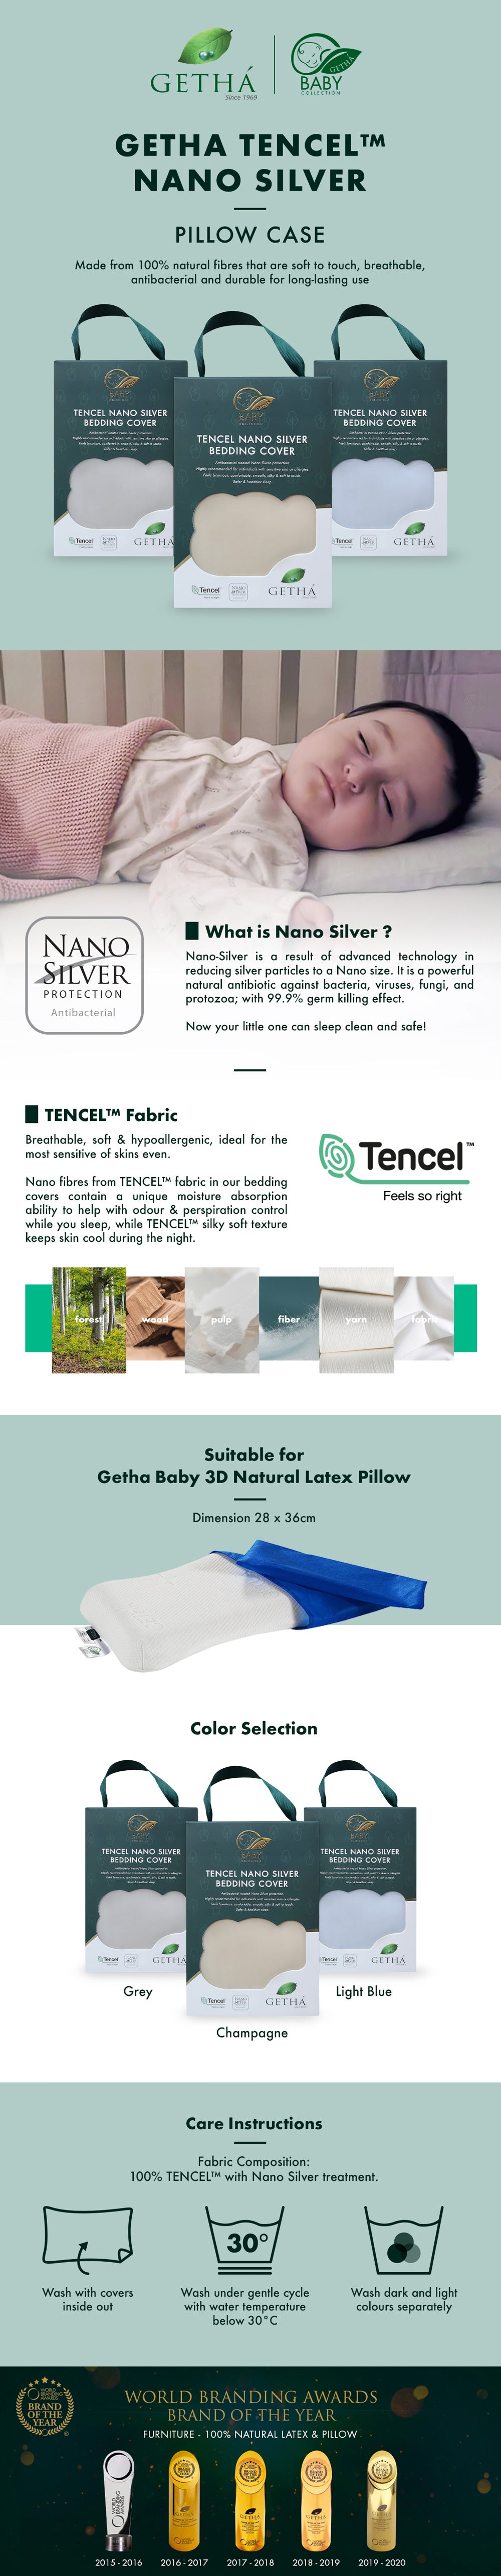 Getha Tencel Nano Silver Pillow Case – Baby 3D Latex Pillow